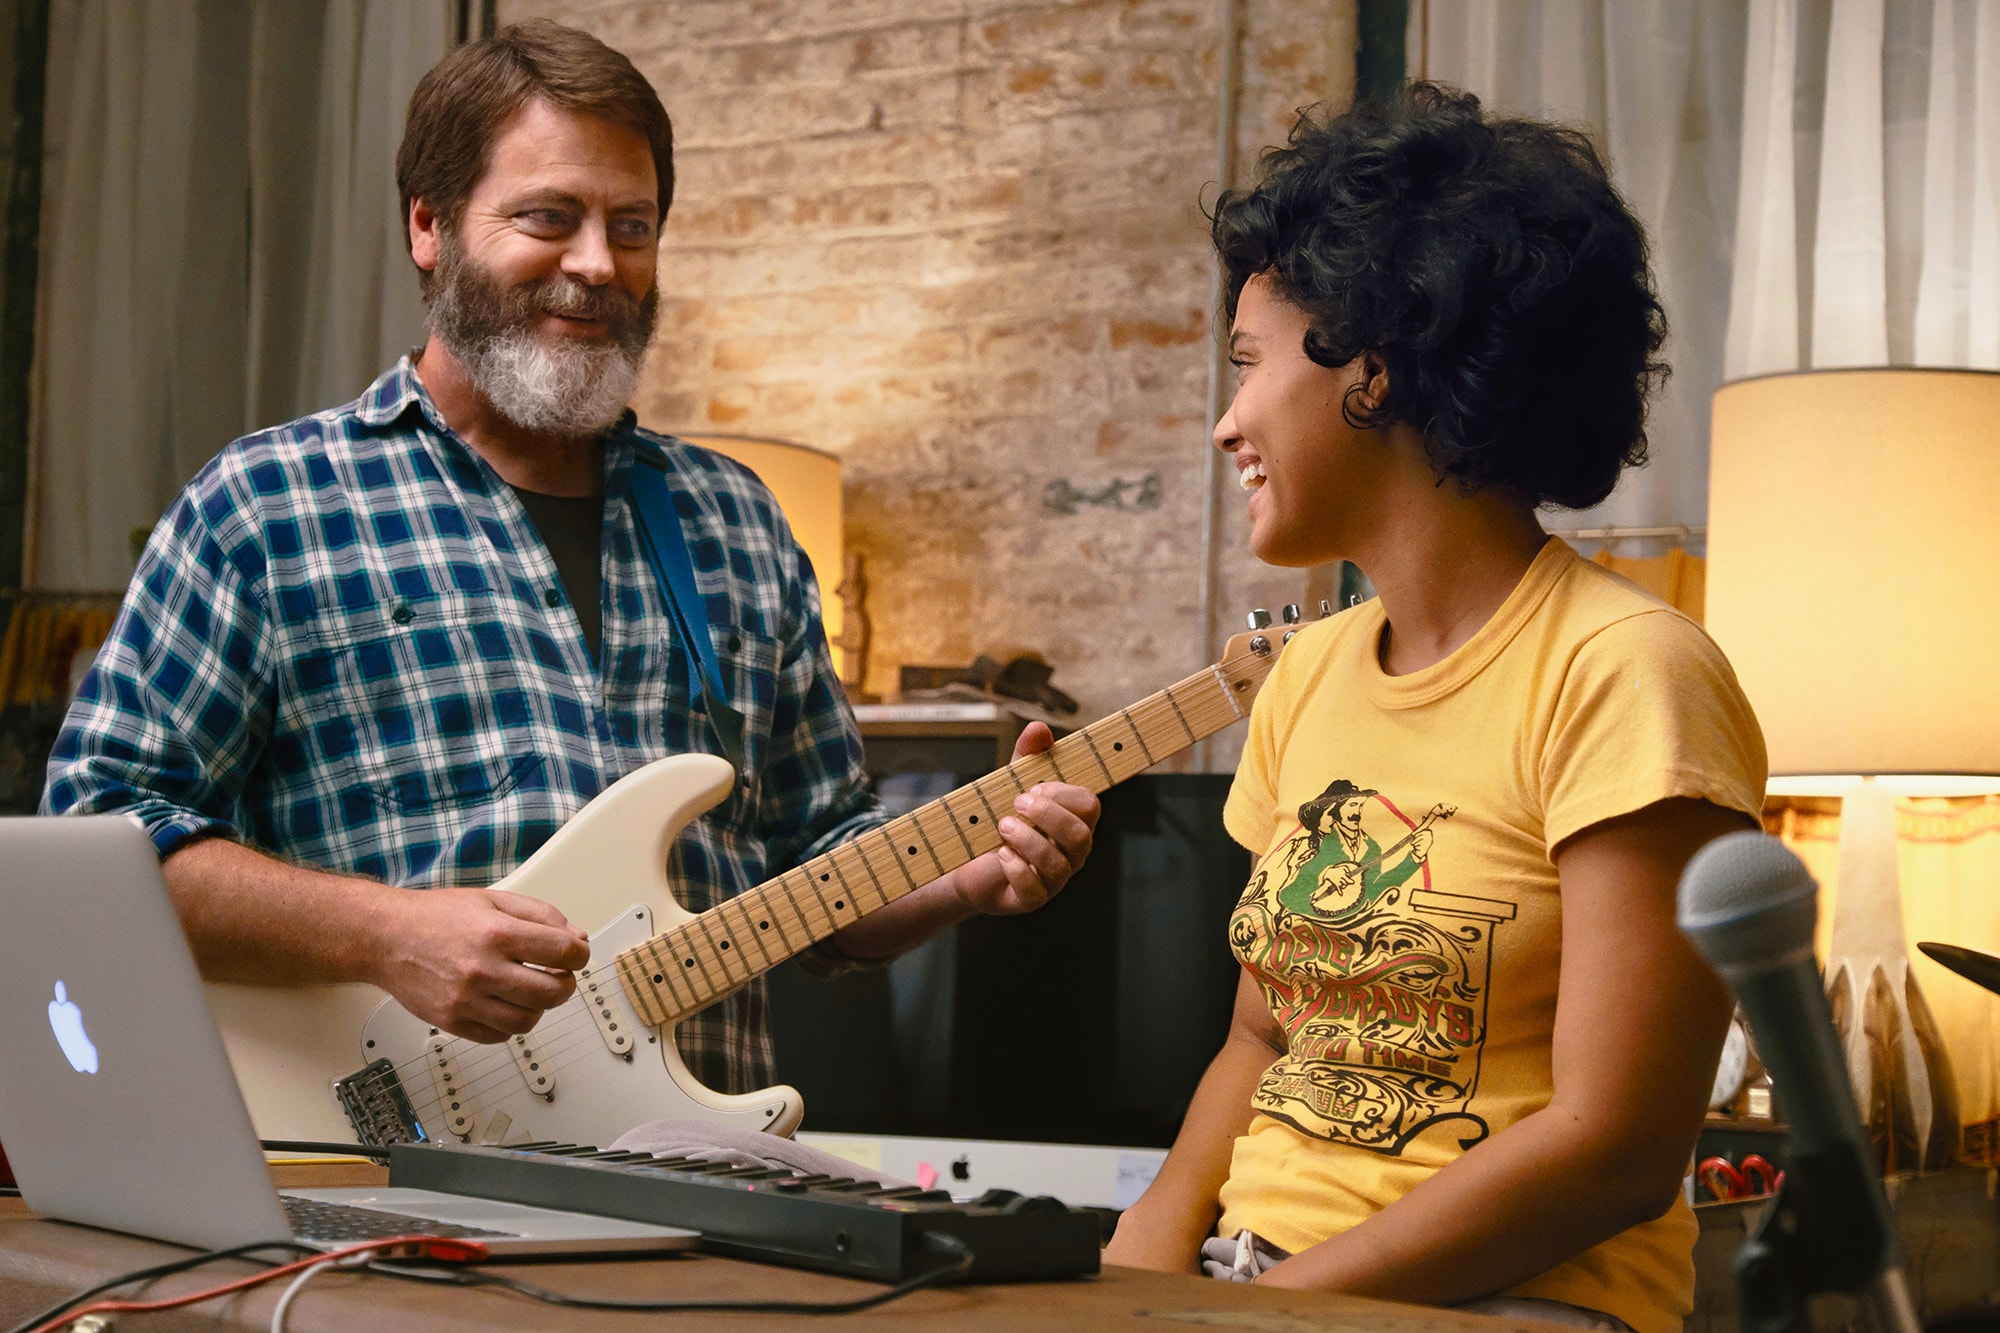 Nick Offerman and Kiersey Clemons in Hearts Beat Loud (2018).